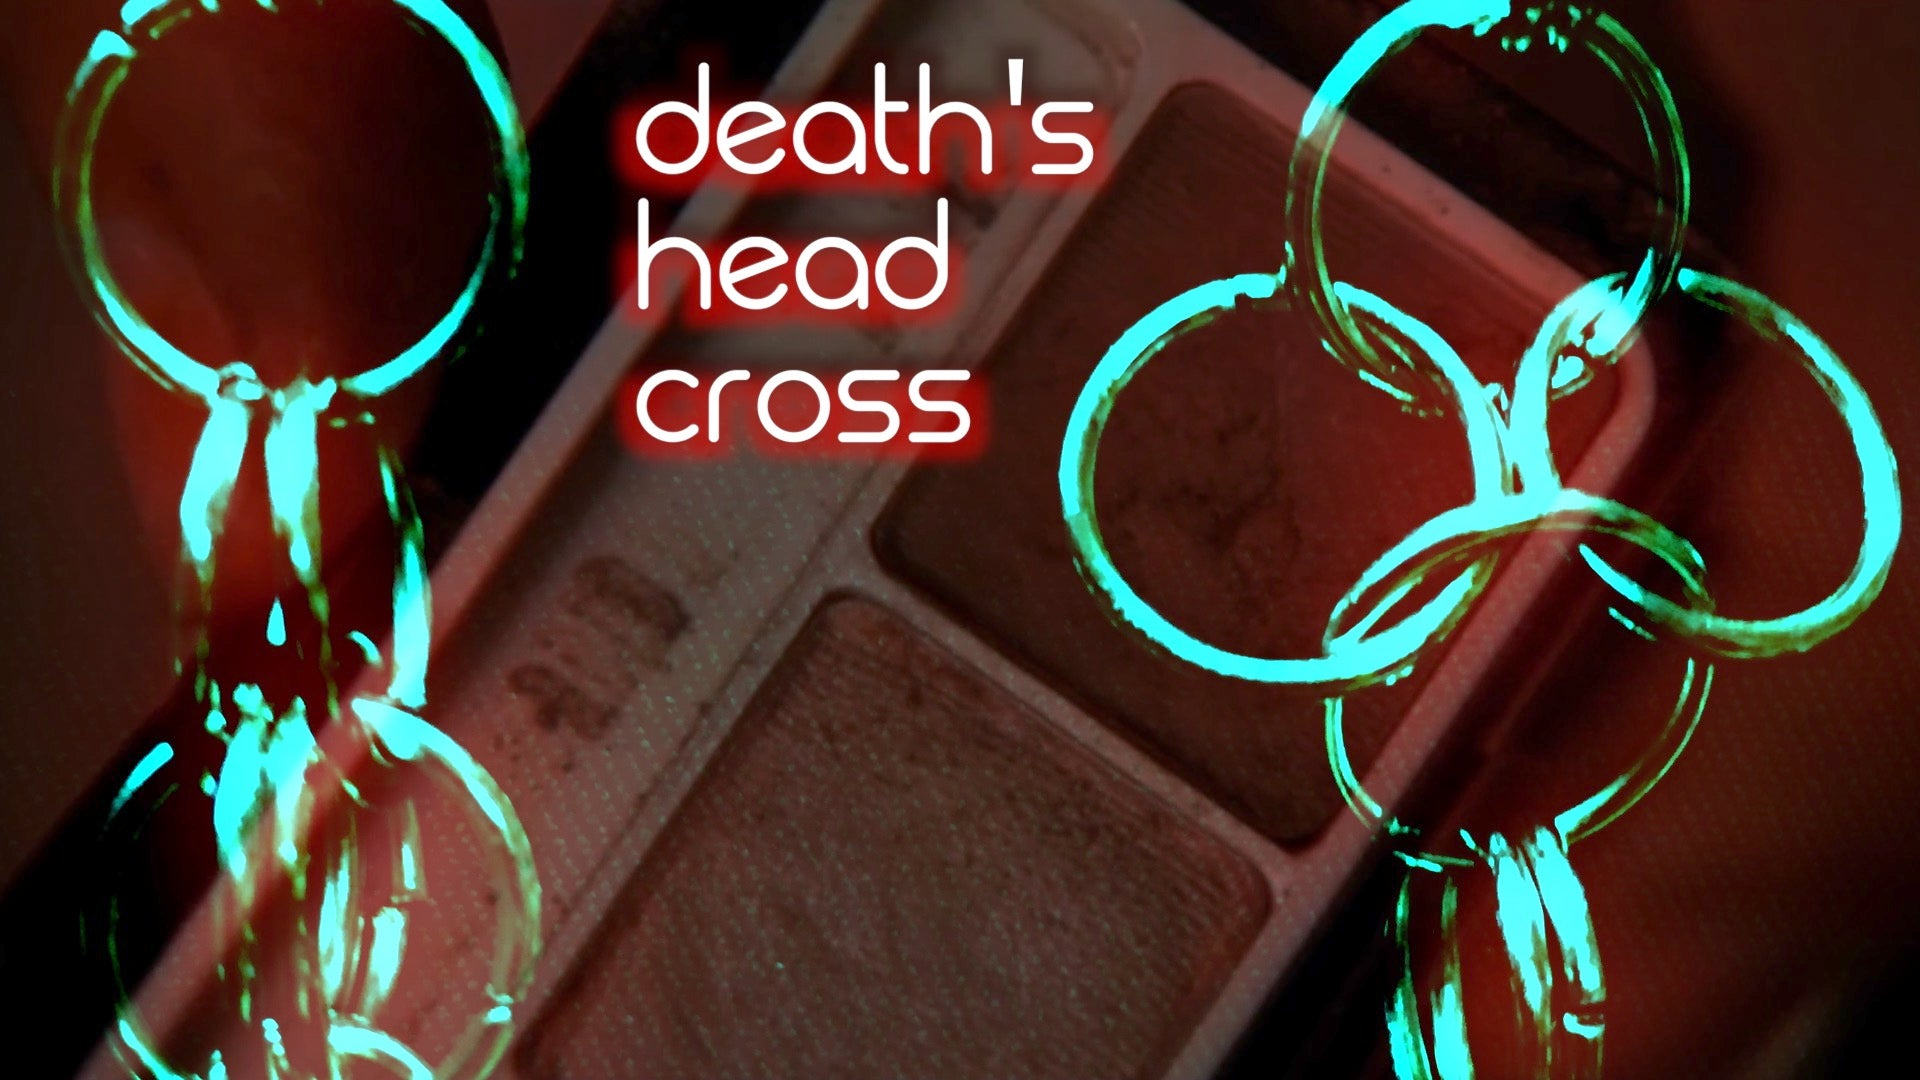 DEATH'S HEAD CROSS earrings